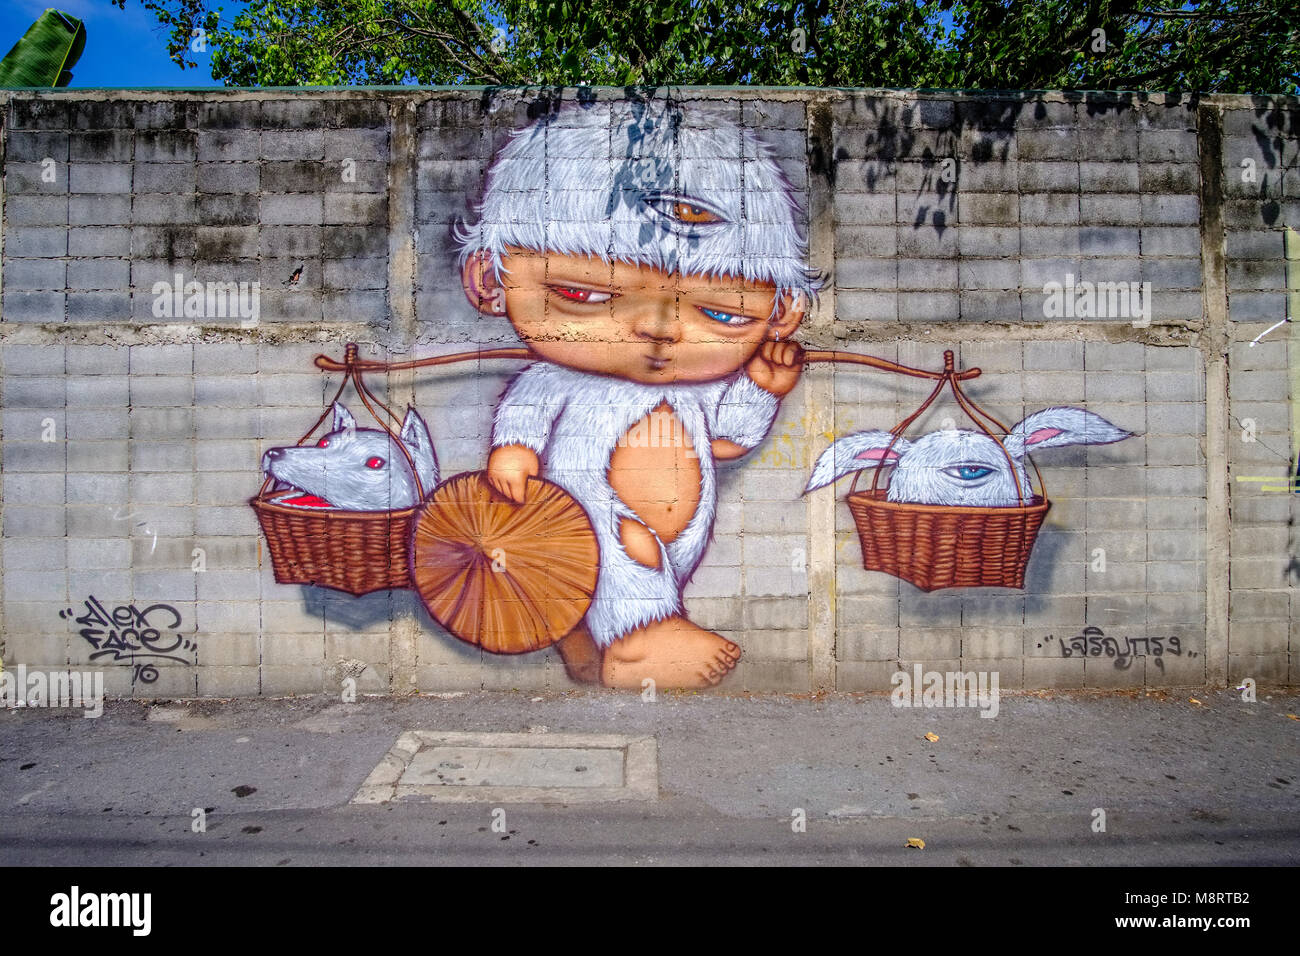 Colorful Graffiti Of A Phantasy Boy Carrying Baskets With Animals At A Wall